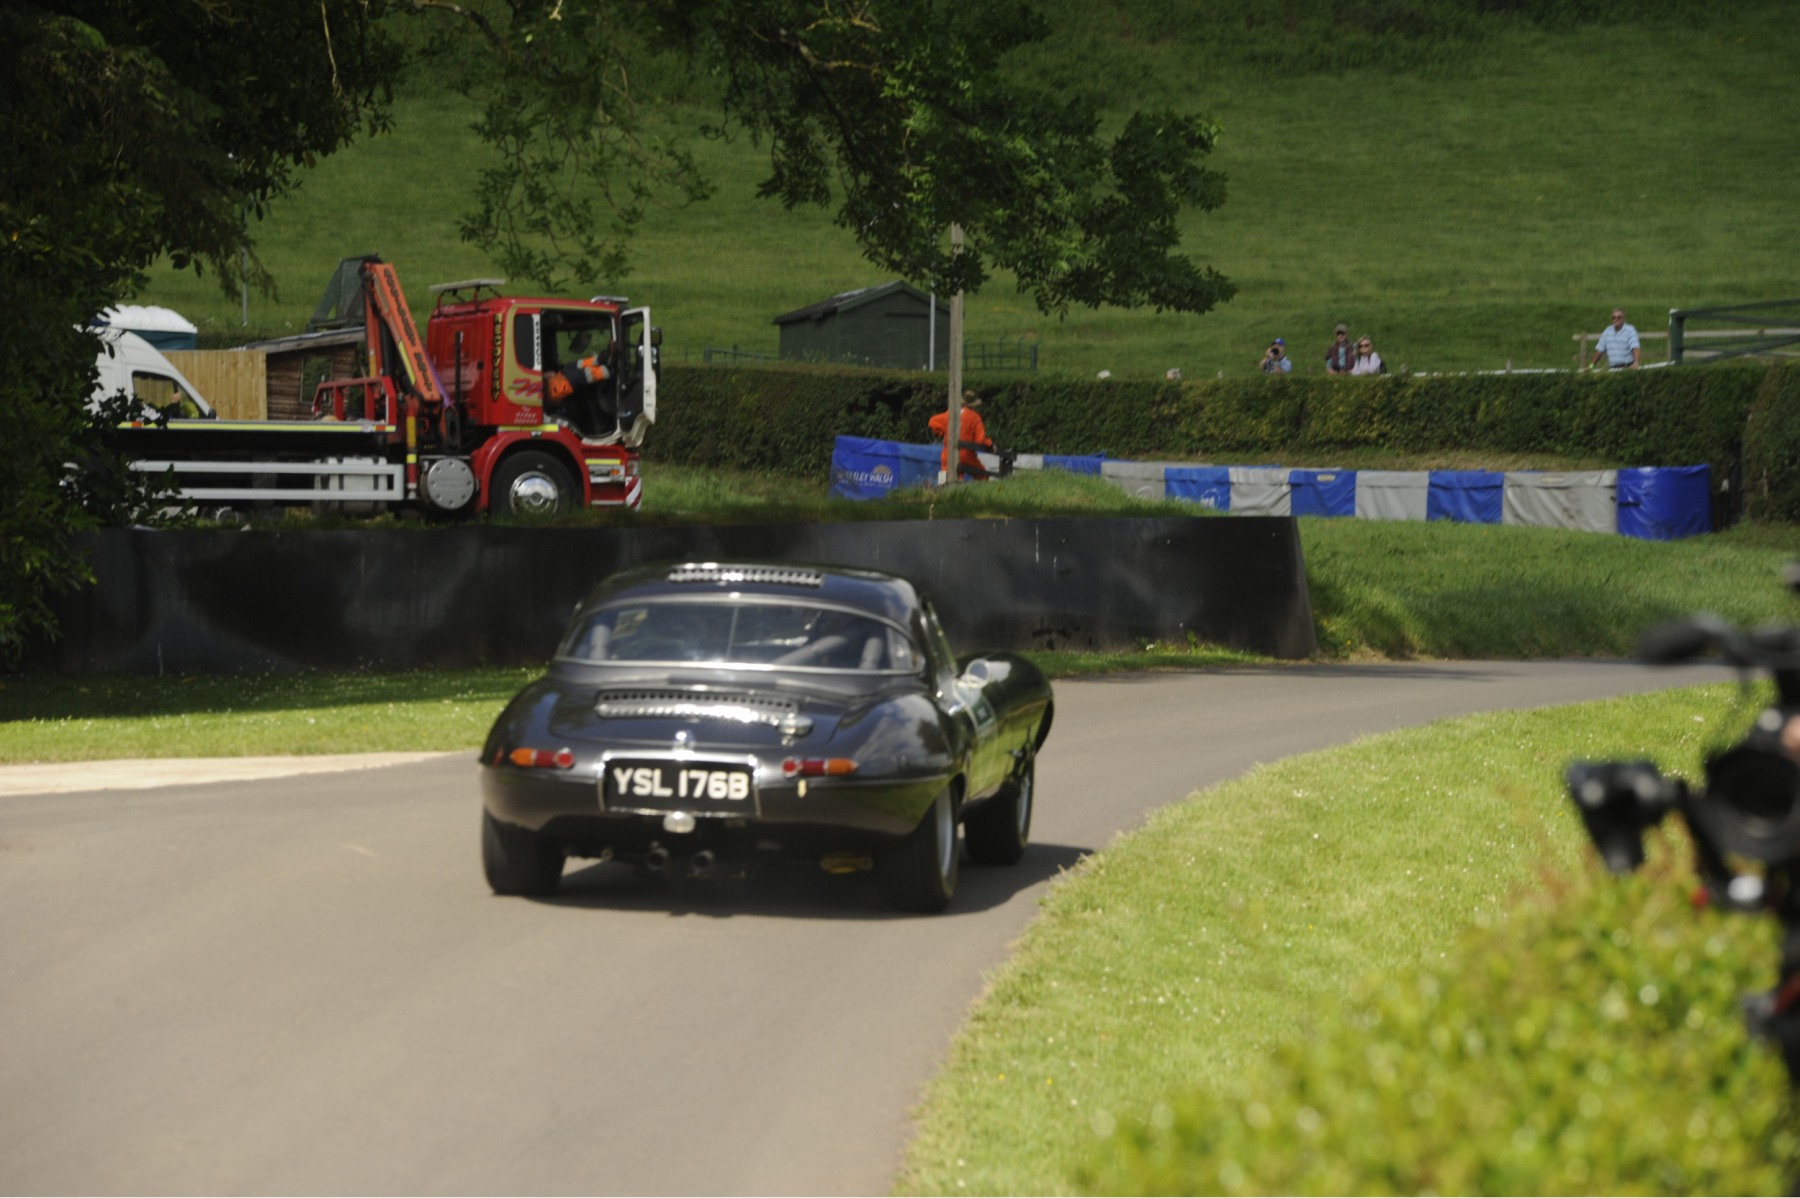 E-type-60-Saturday-photo-by-Abigail-Humphries-137